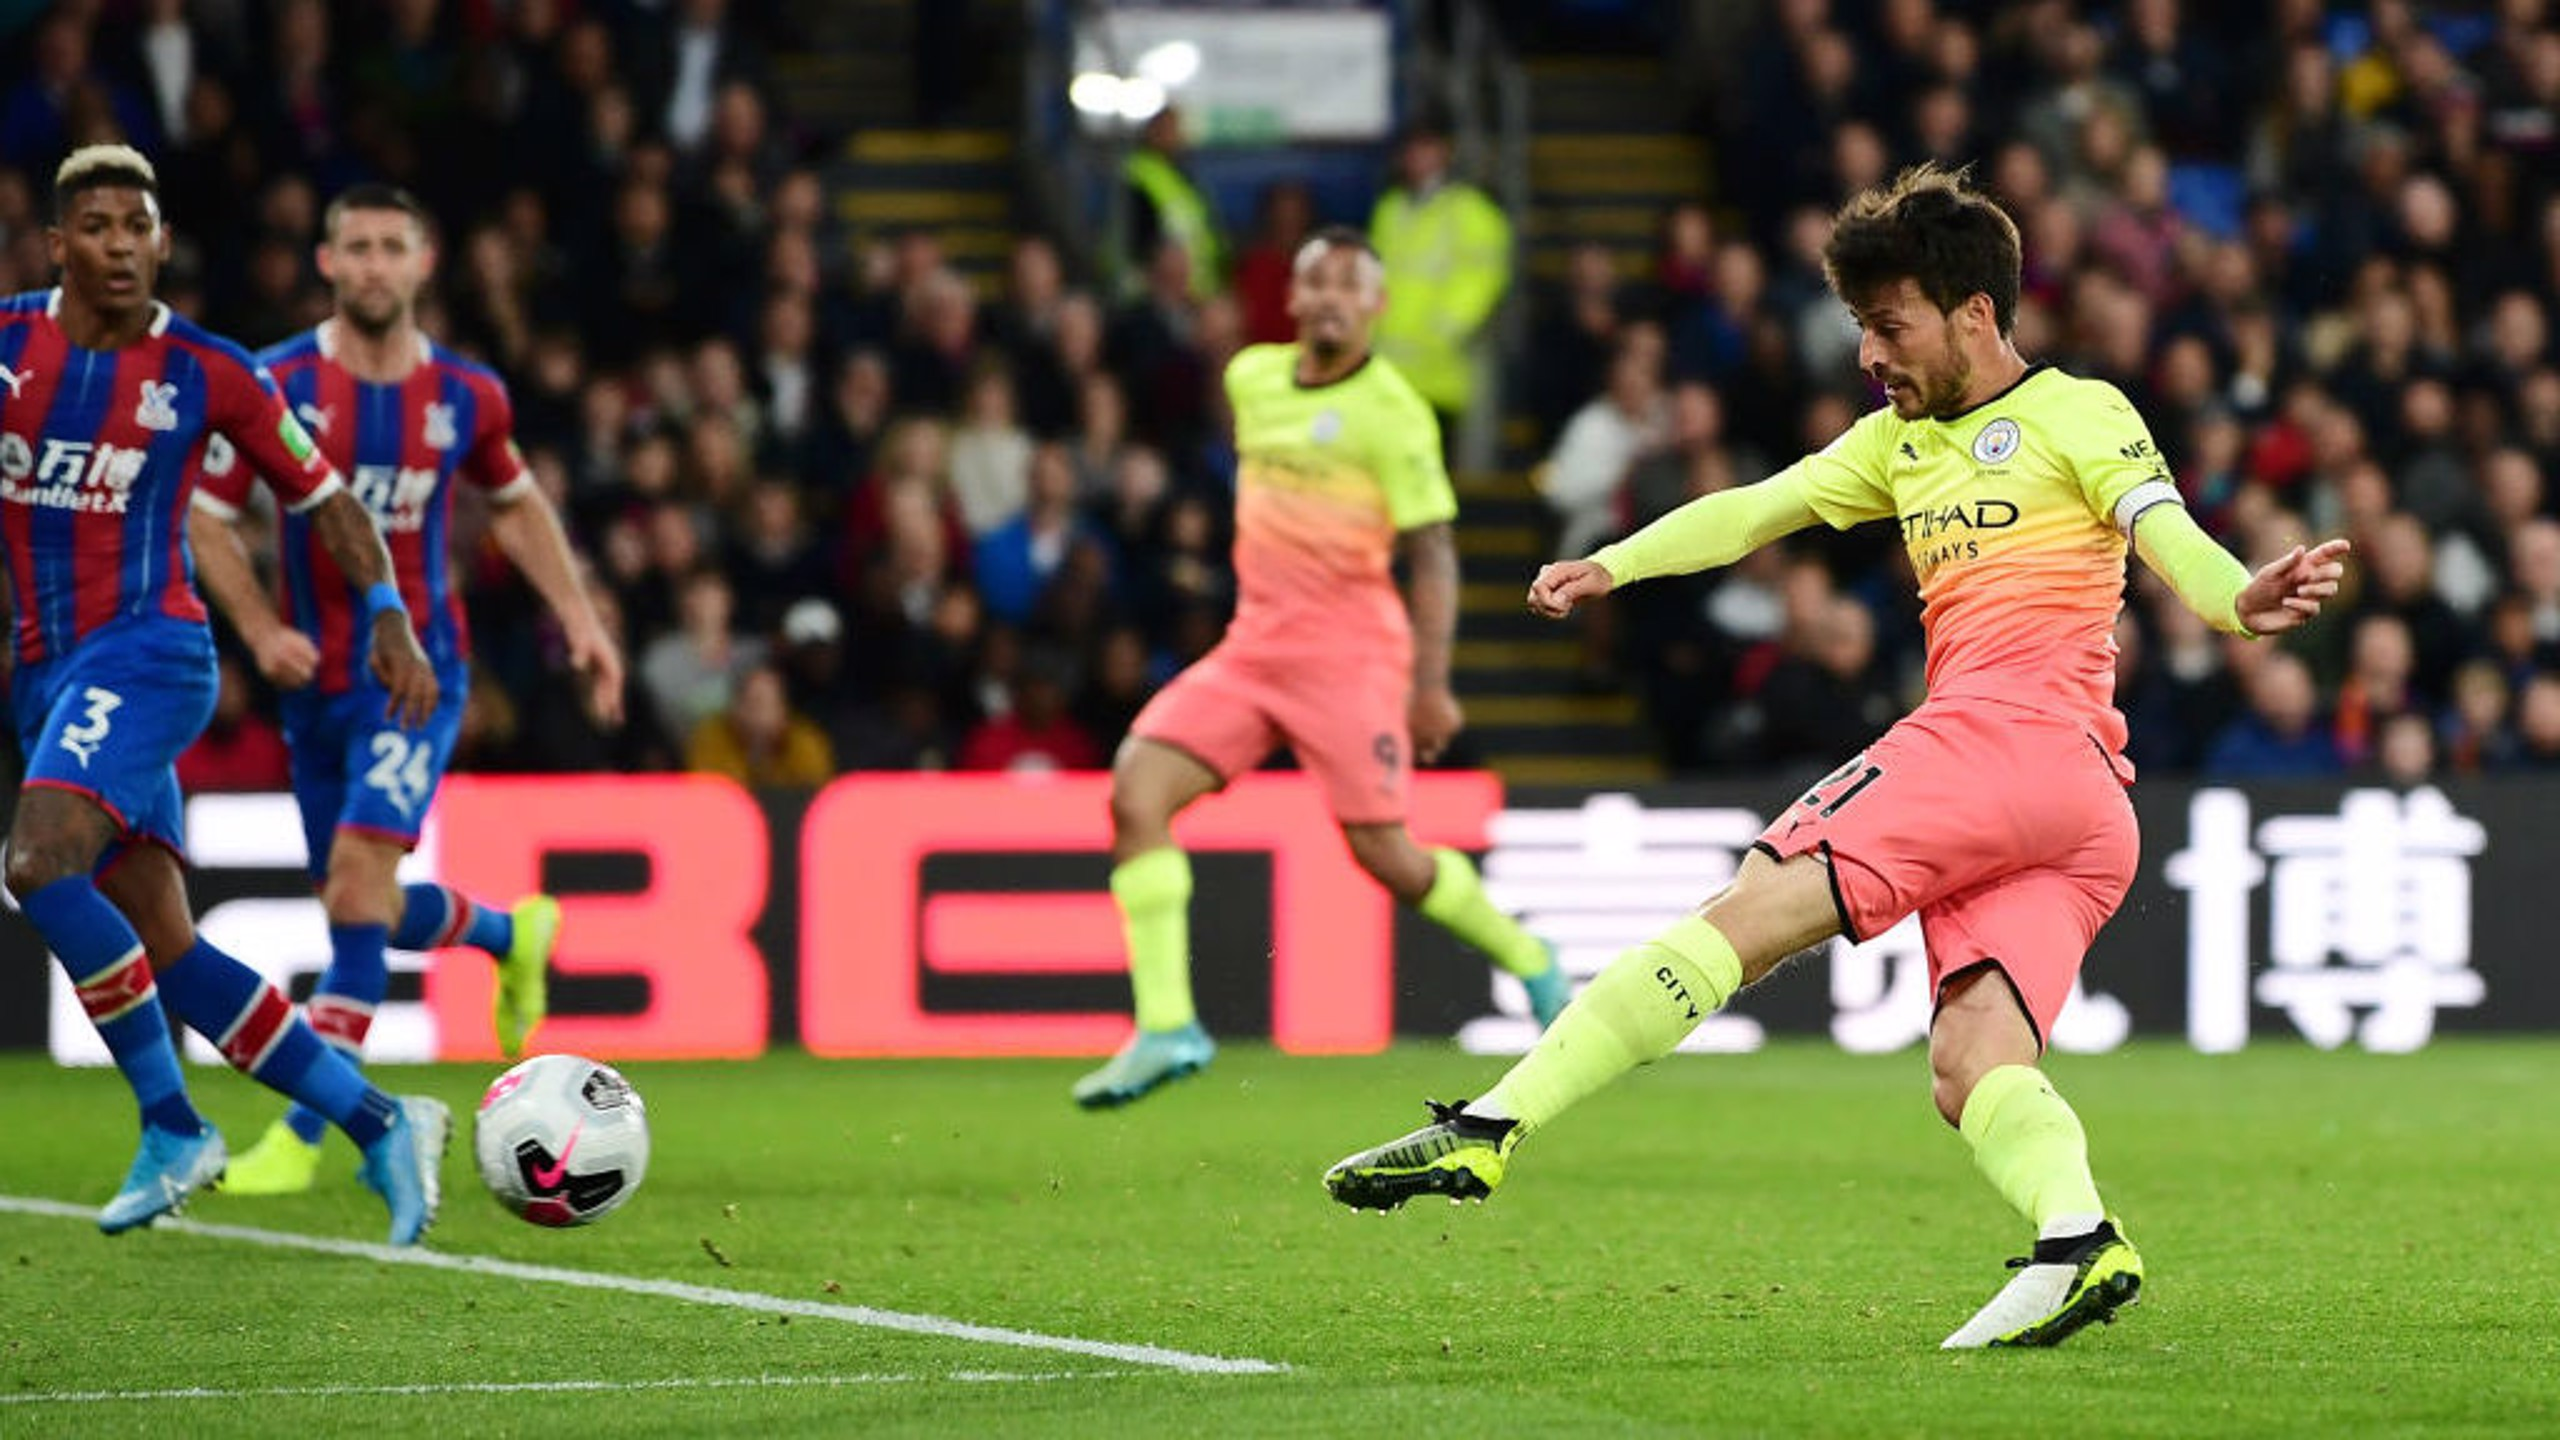 MAKE THAT TWO: El Mago volleys in expertly to double our lead seconds after Jesus' opener.